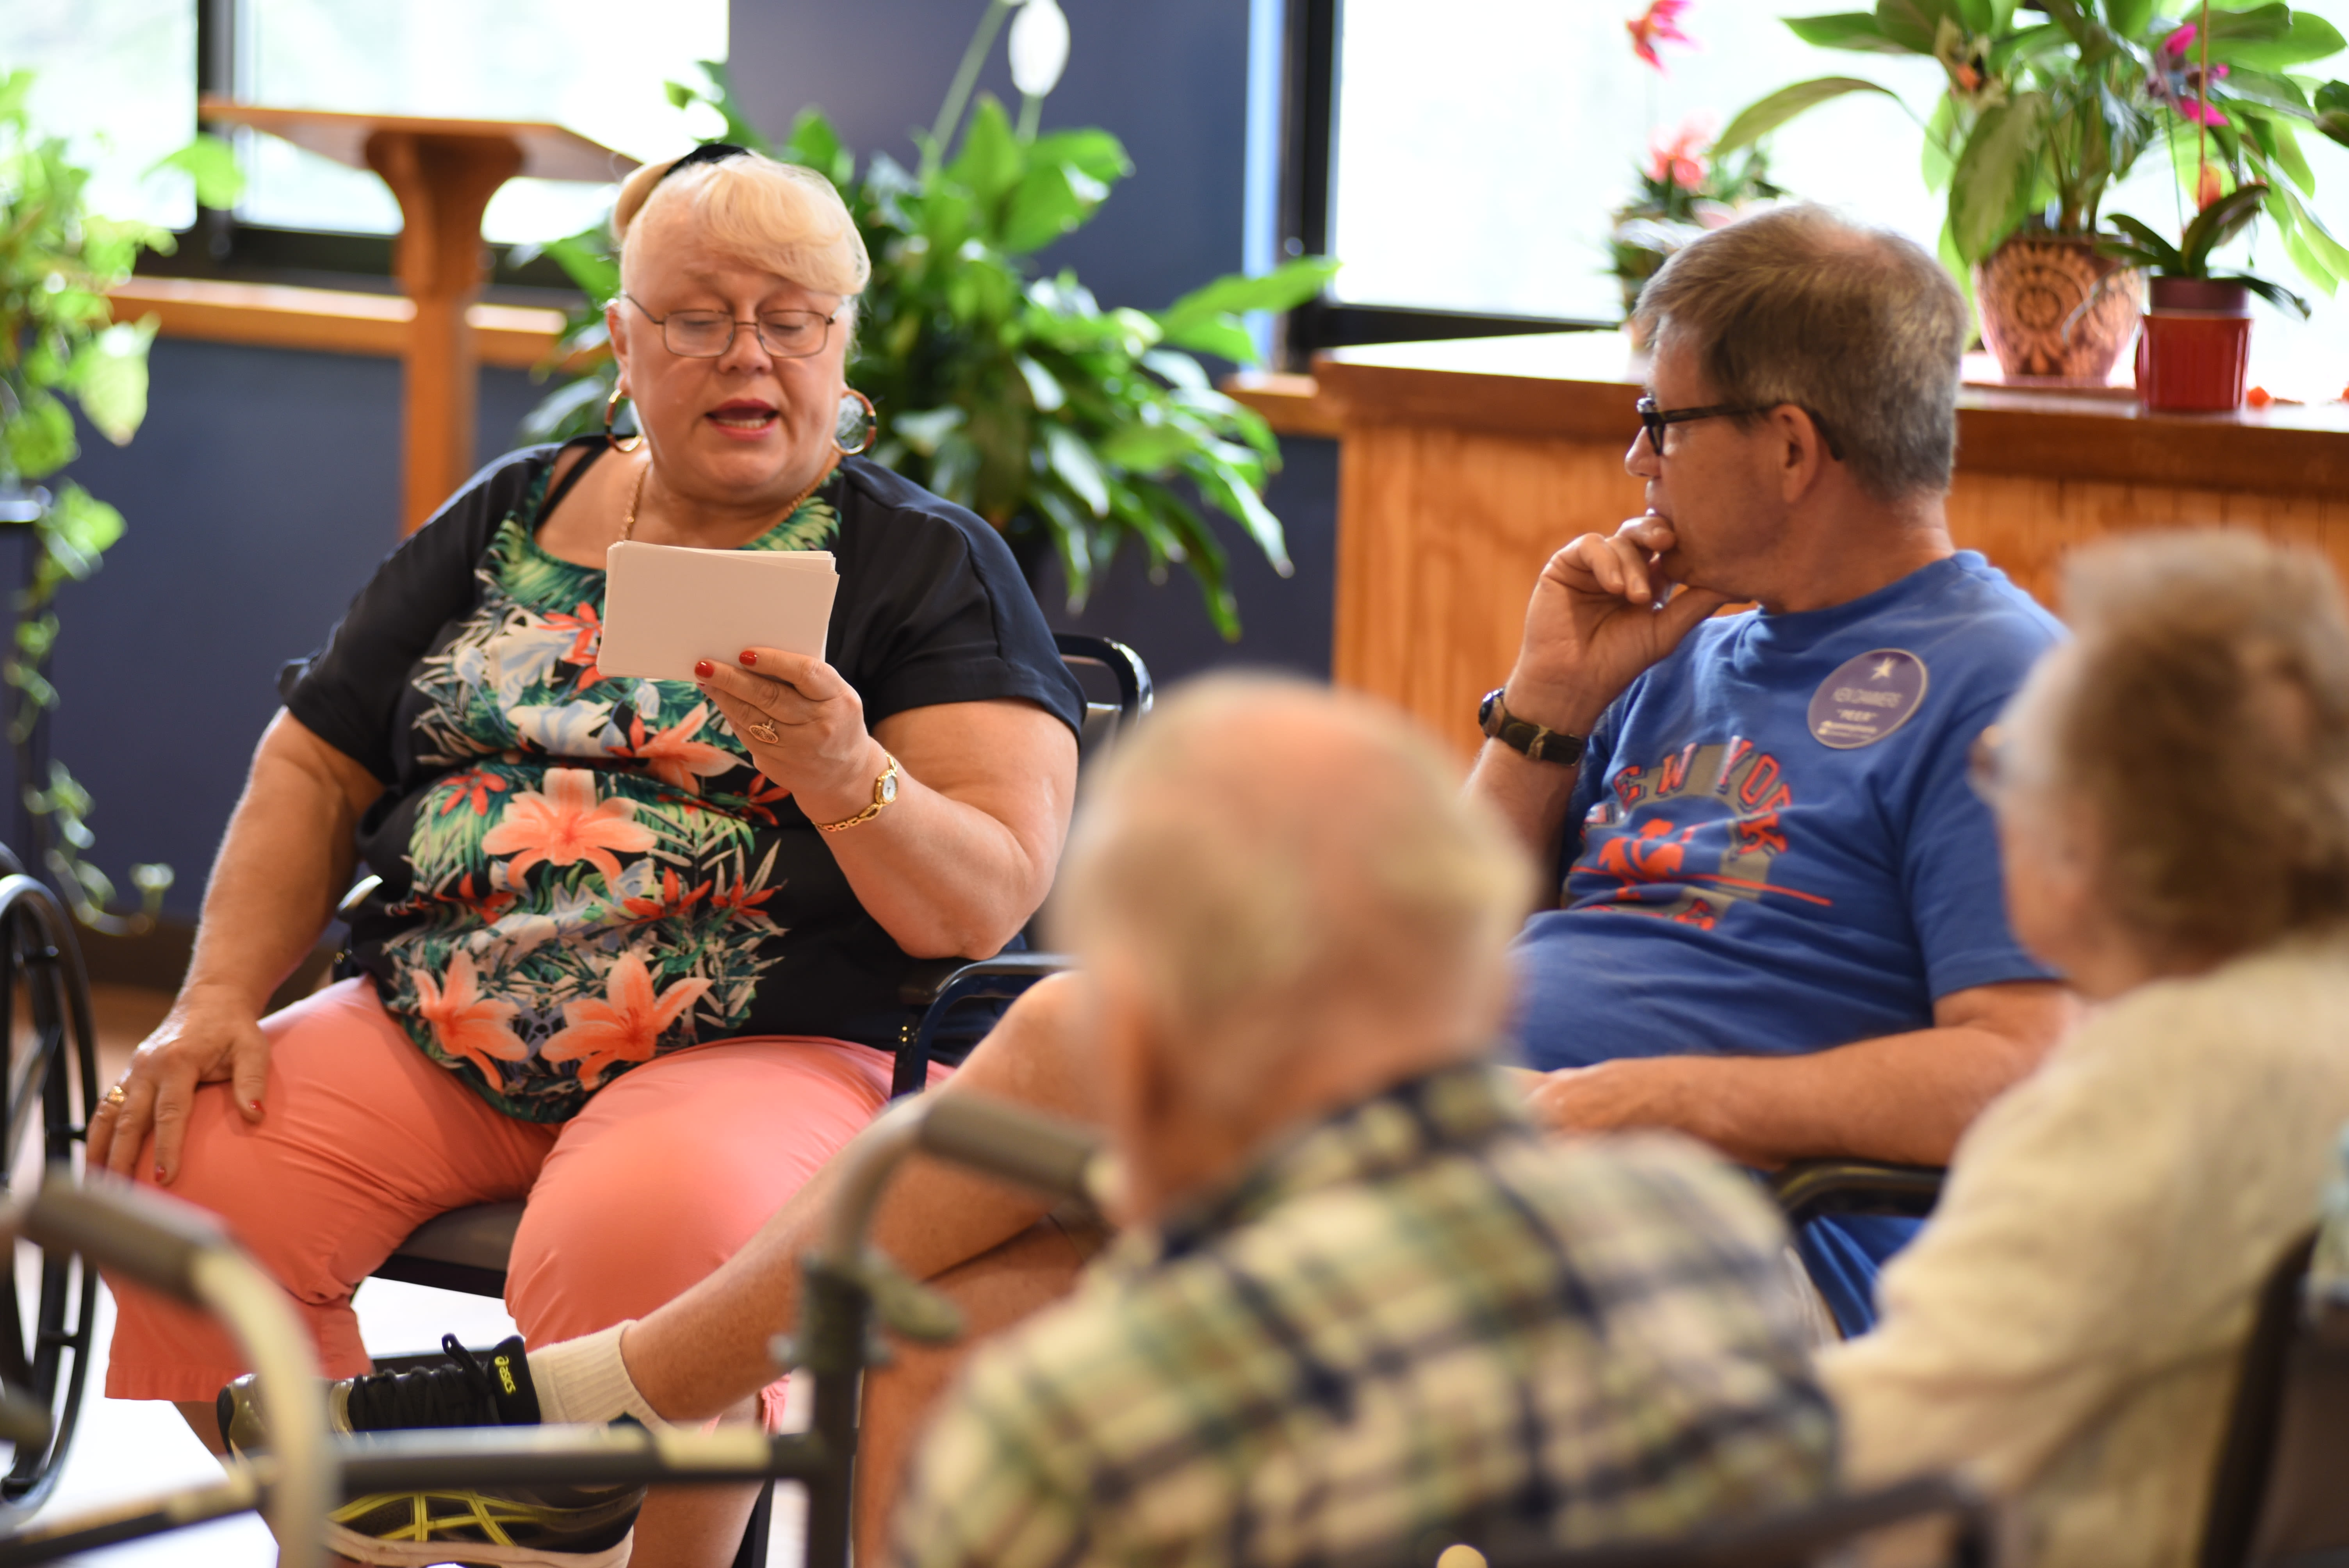 Residents hanging out together at the bar at Belle Reve Senior Living in Milford, Pennsylvania